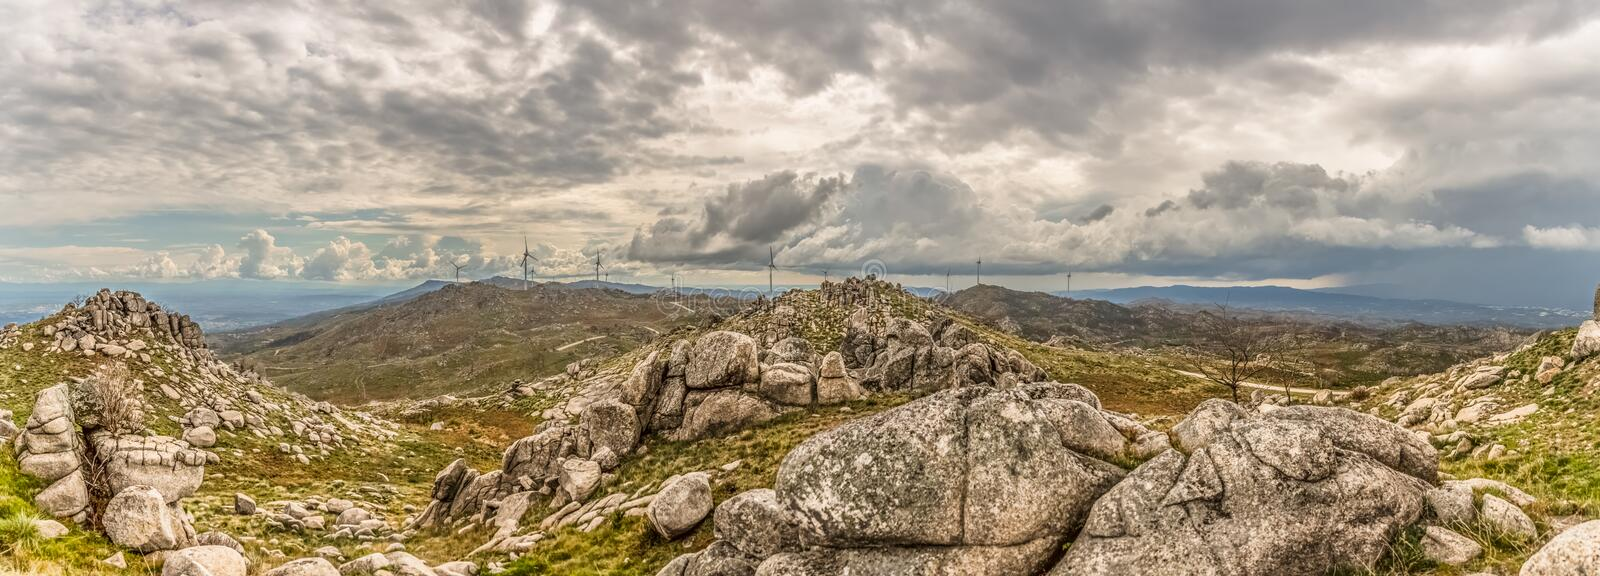 Ultra panoramic view at the Caramulo Mountains, and wind turbines on top of mountains and dramatic sky as background stock photo